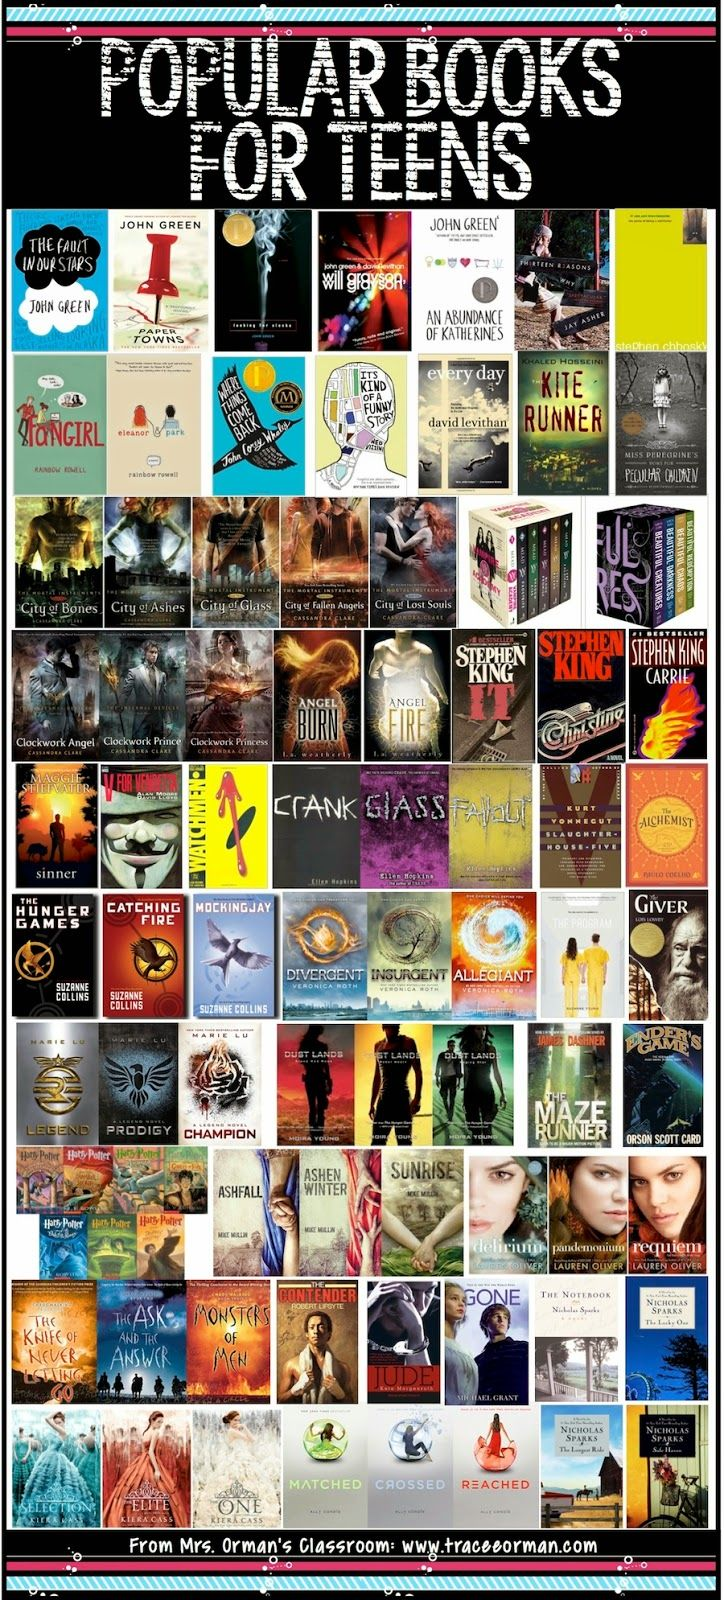 Hunger Games Lessons: New Books for Teens and Adults